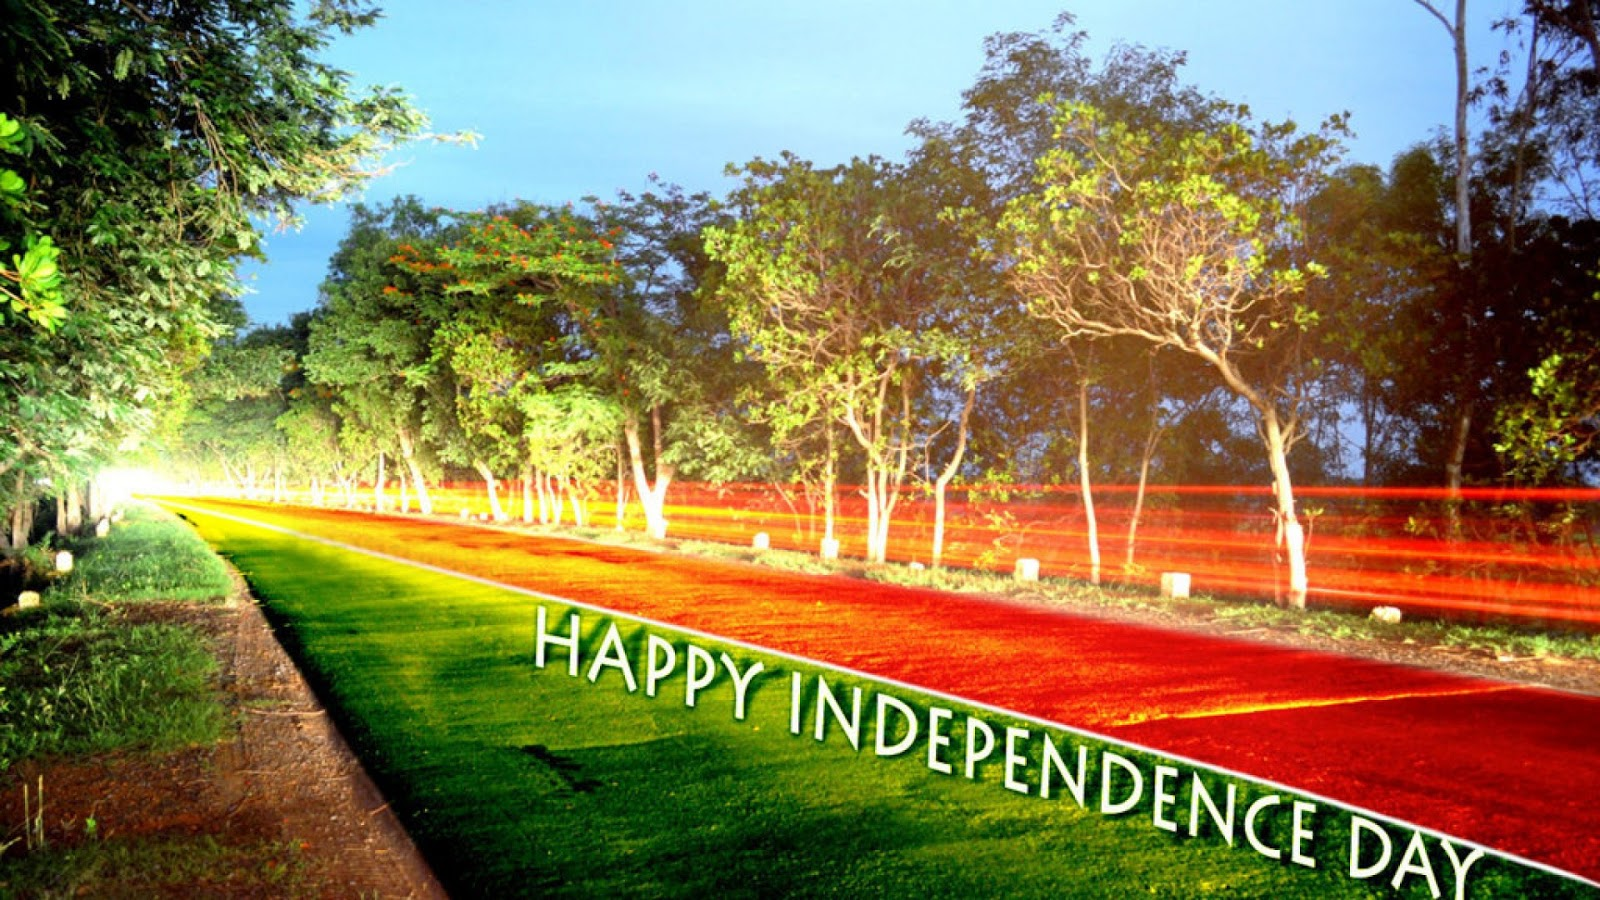 15 August Independence Day Hd Wallpaper: Latest 15th August 2018 Wallpapers And 15 August